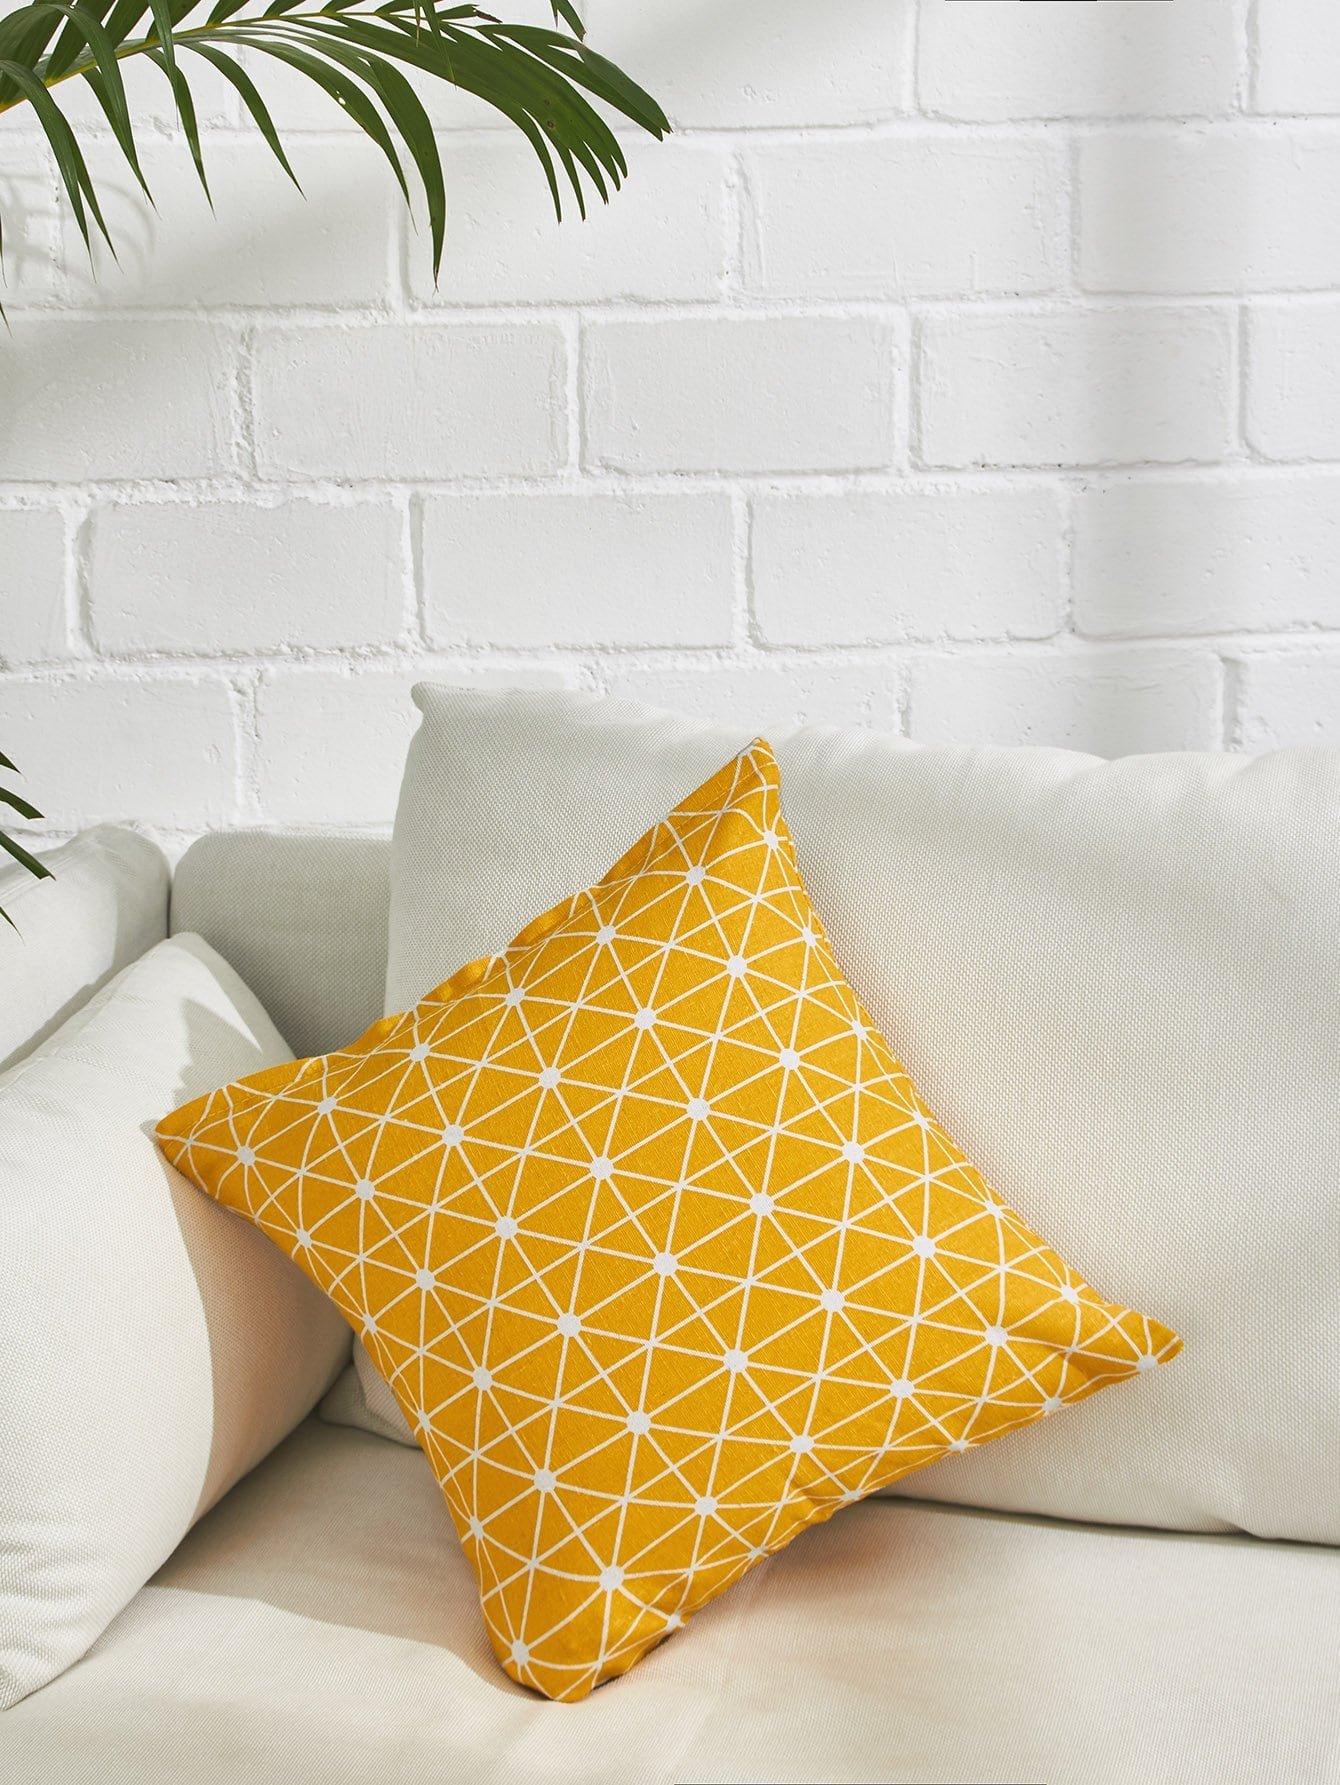 Allover Plaid Print Pillowcase Cover allover grid print pillowcase cover